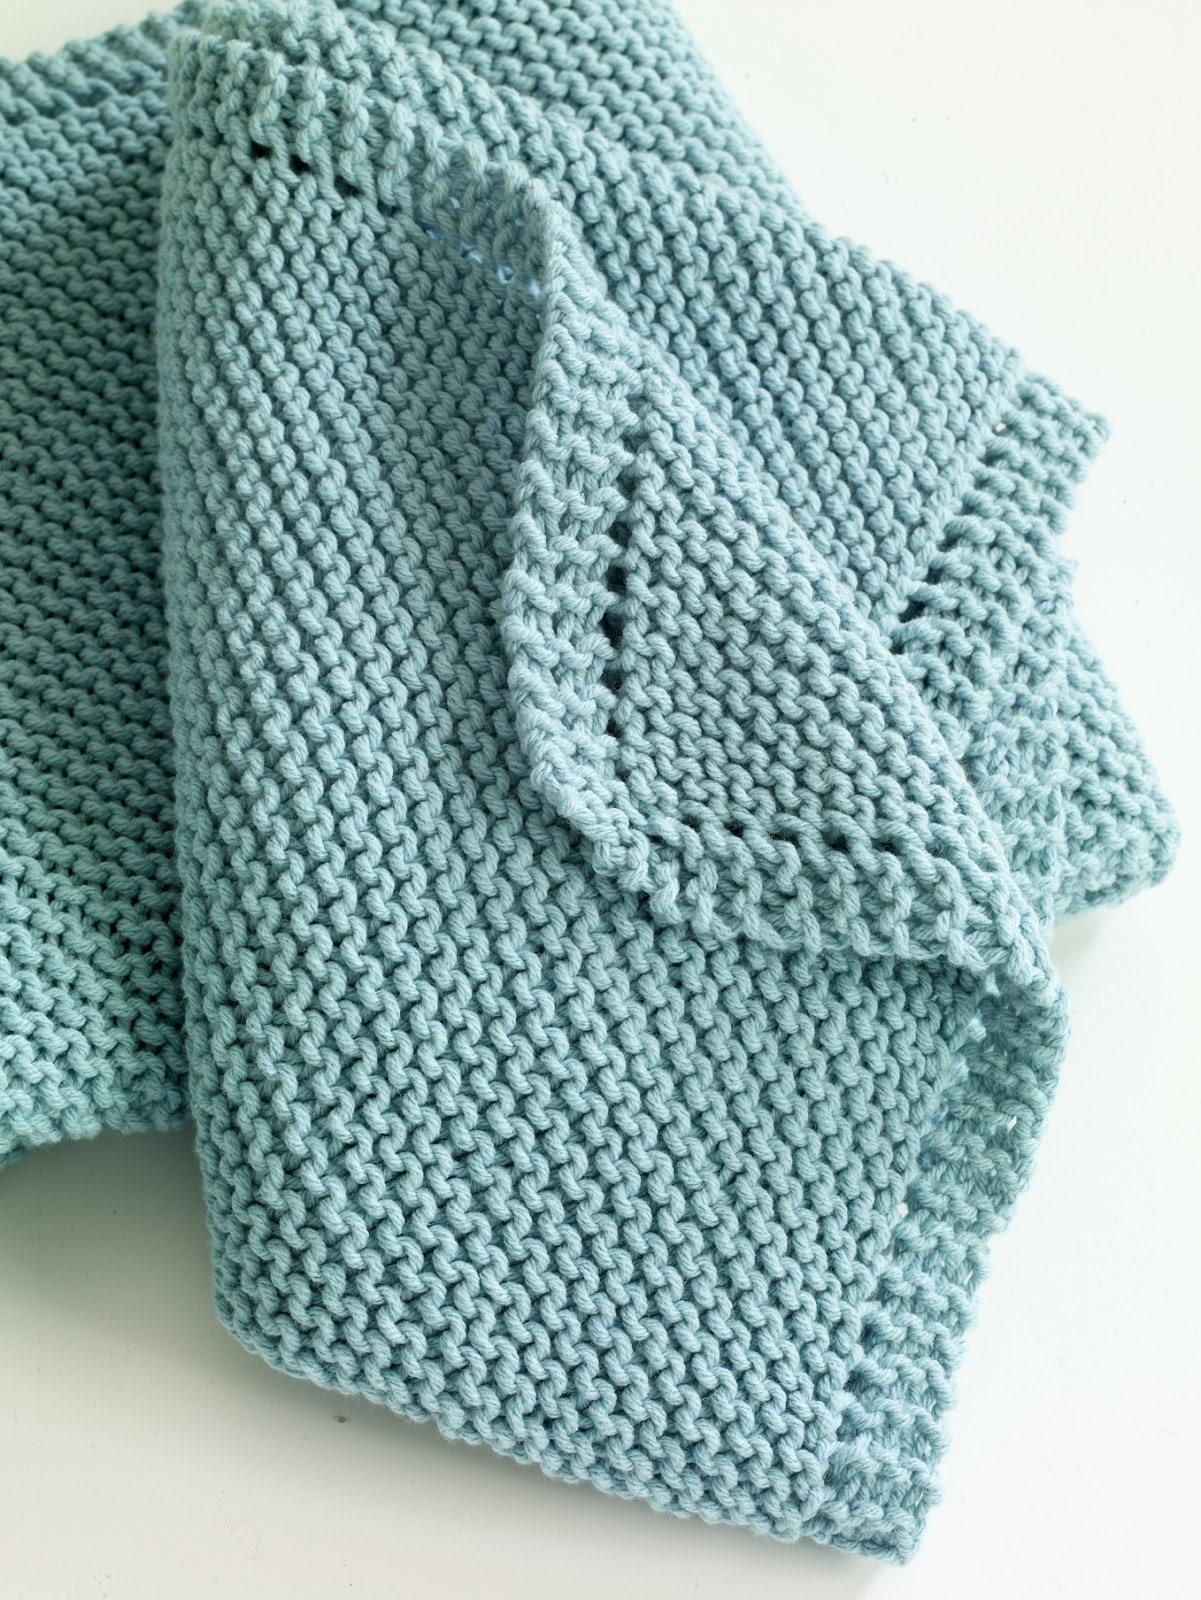 Central Knitting Patterns : Serenity Knits